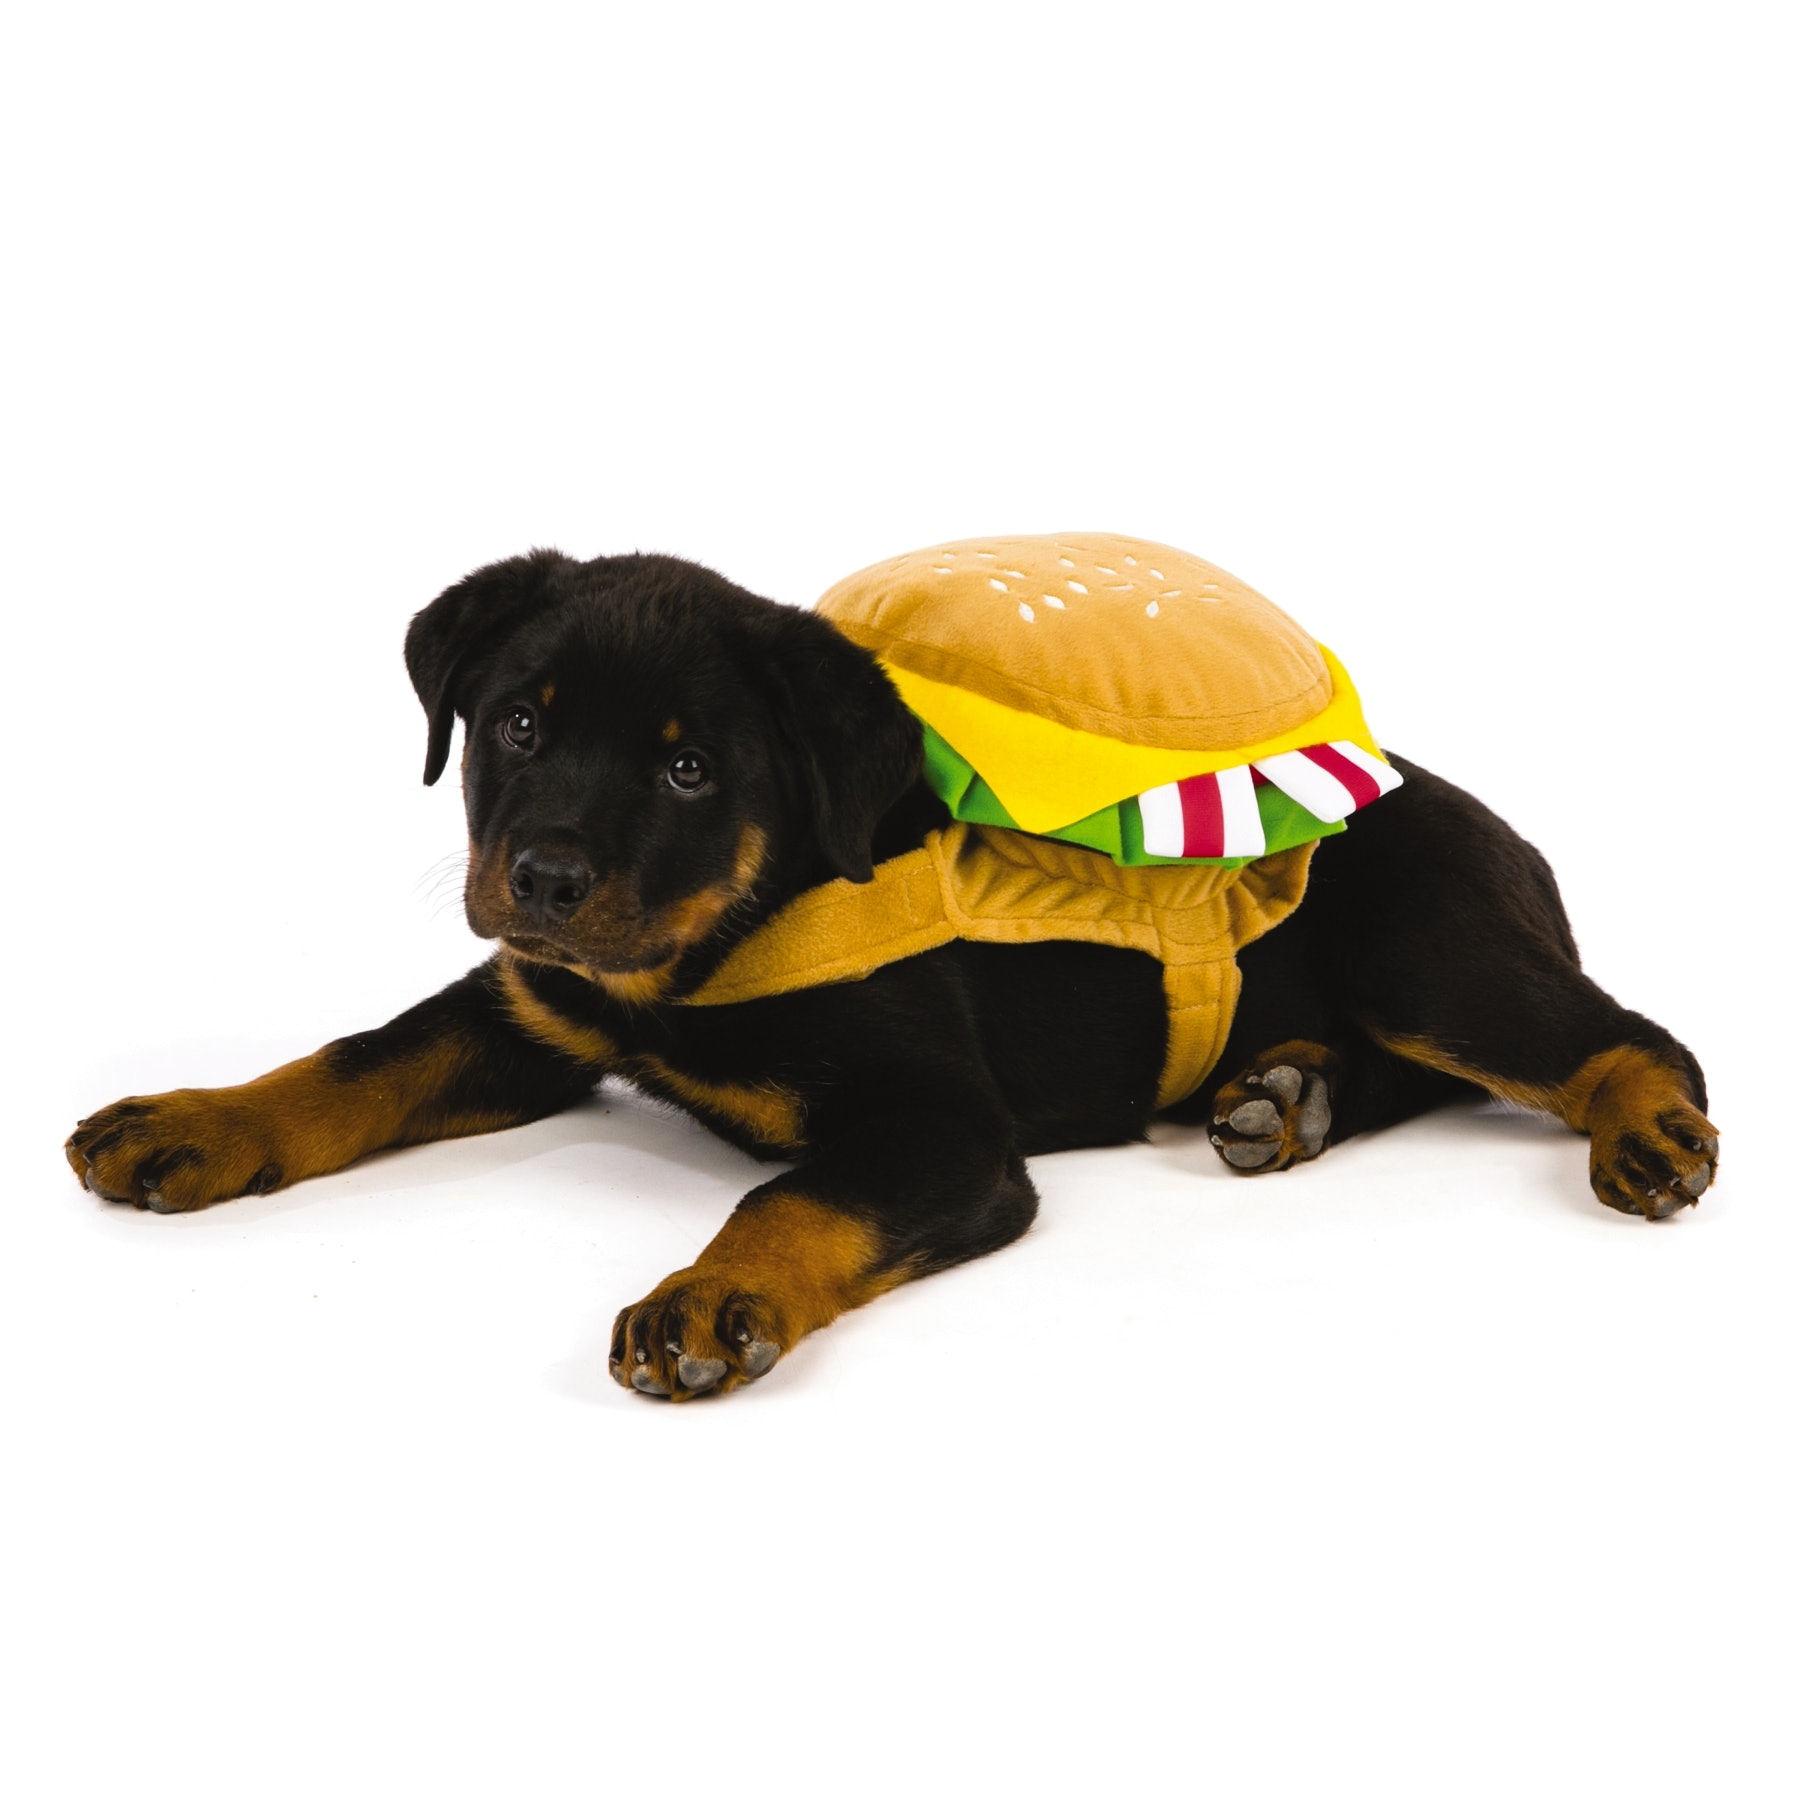 20 Pet Halloween Costume Ideas That Will Make Your Heart Melt From